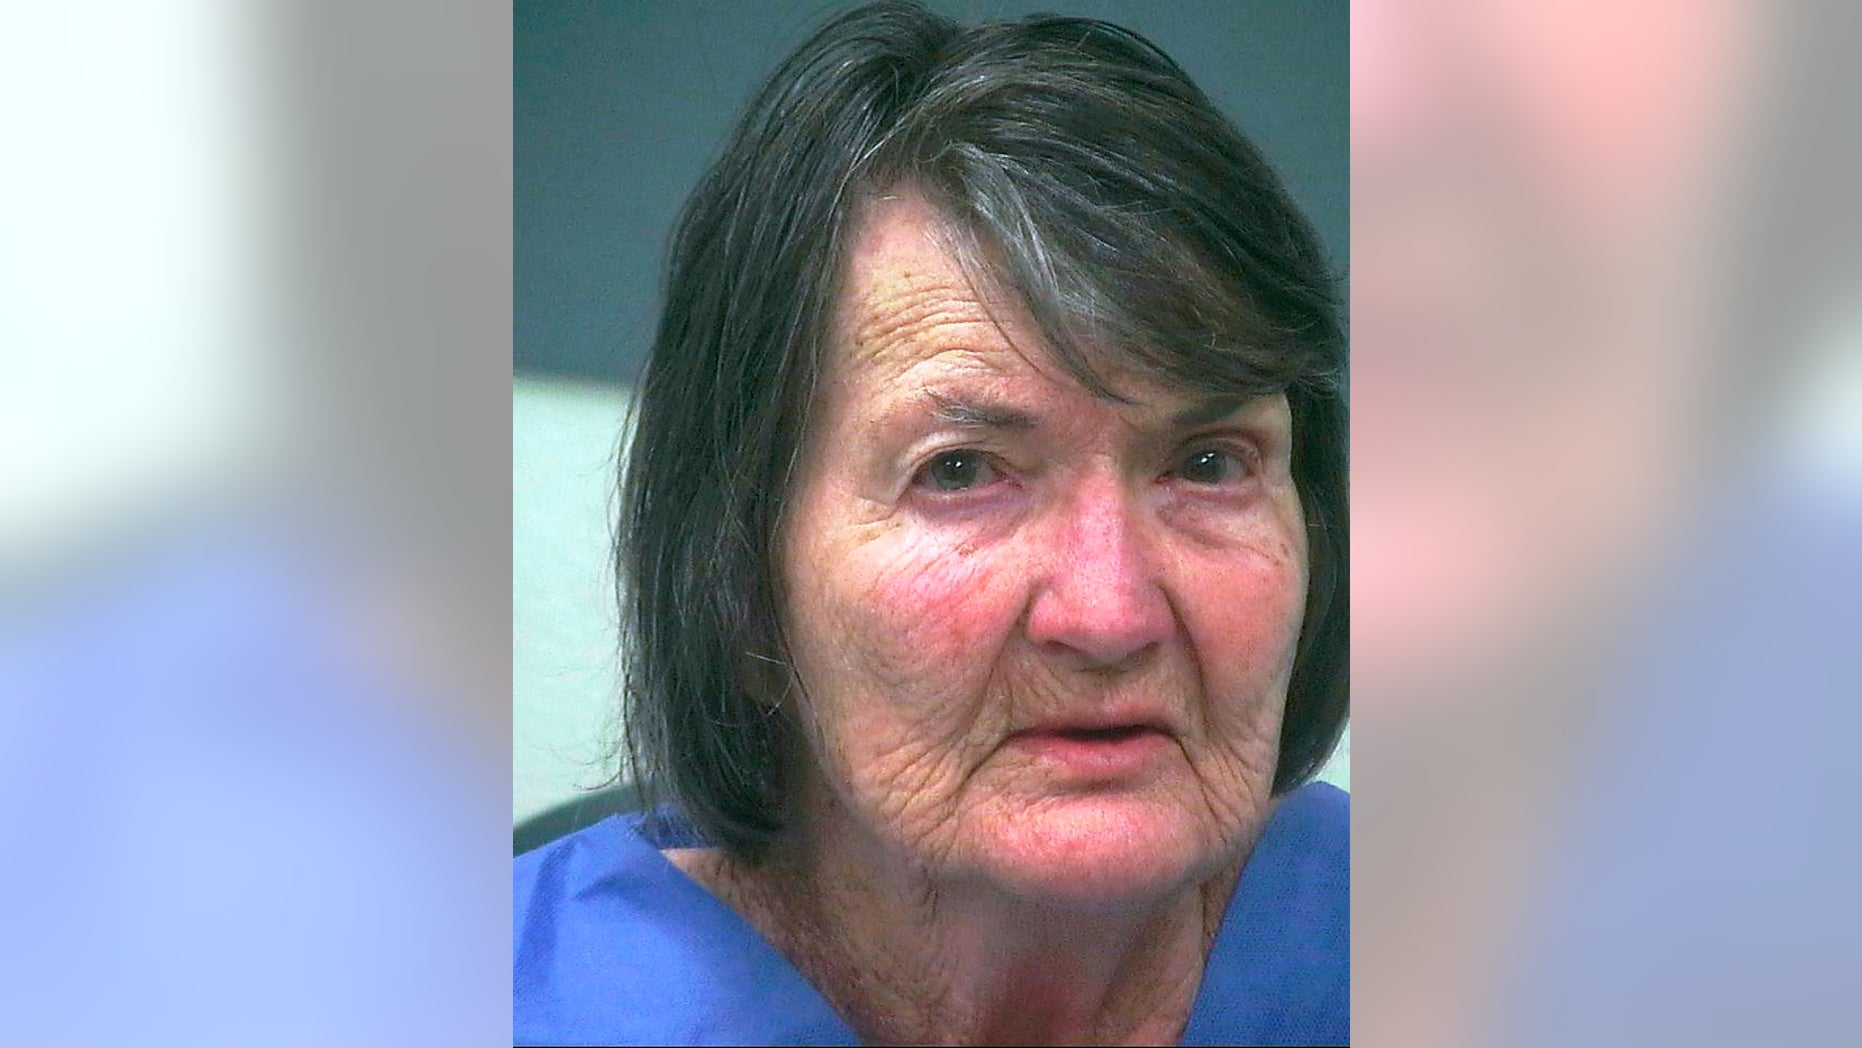 Ramona Maxine Lund allegedly beat her 89-year-old husband to death with a walking cane. She is being evaluated for dementia.